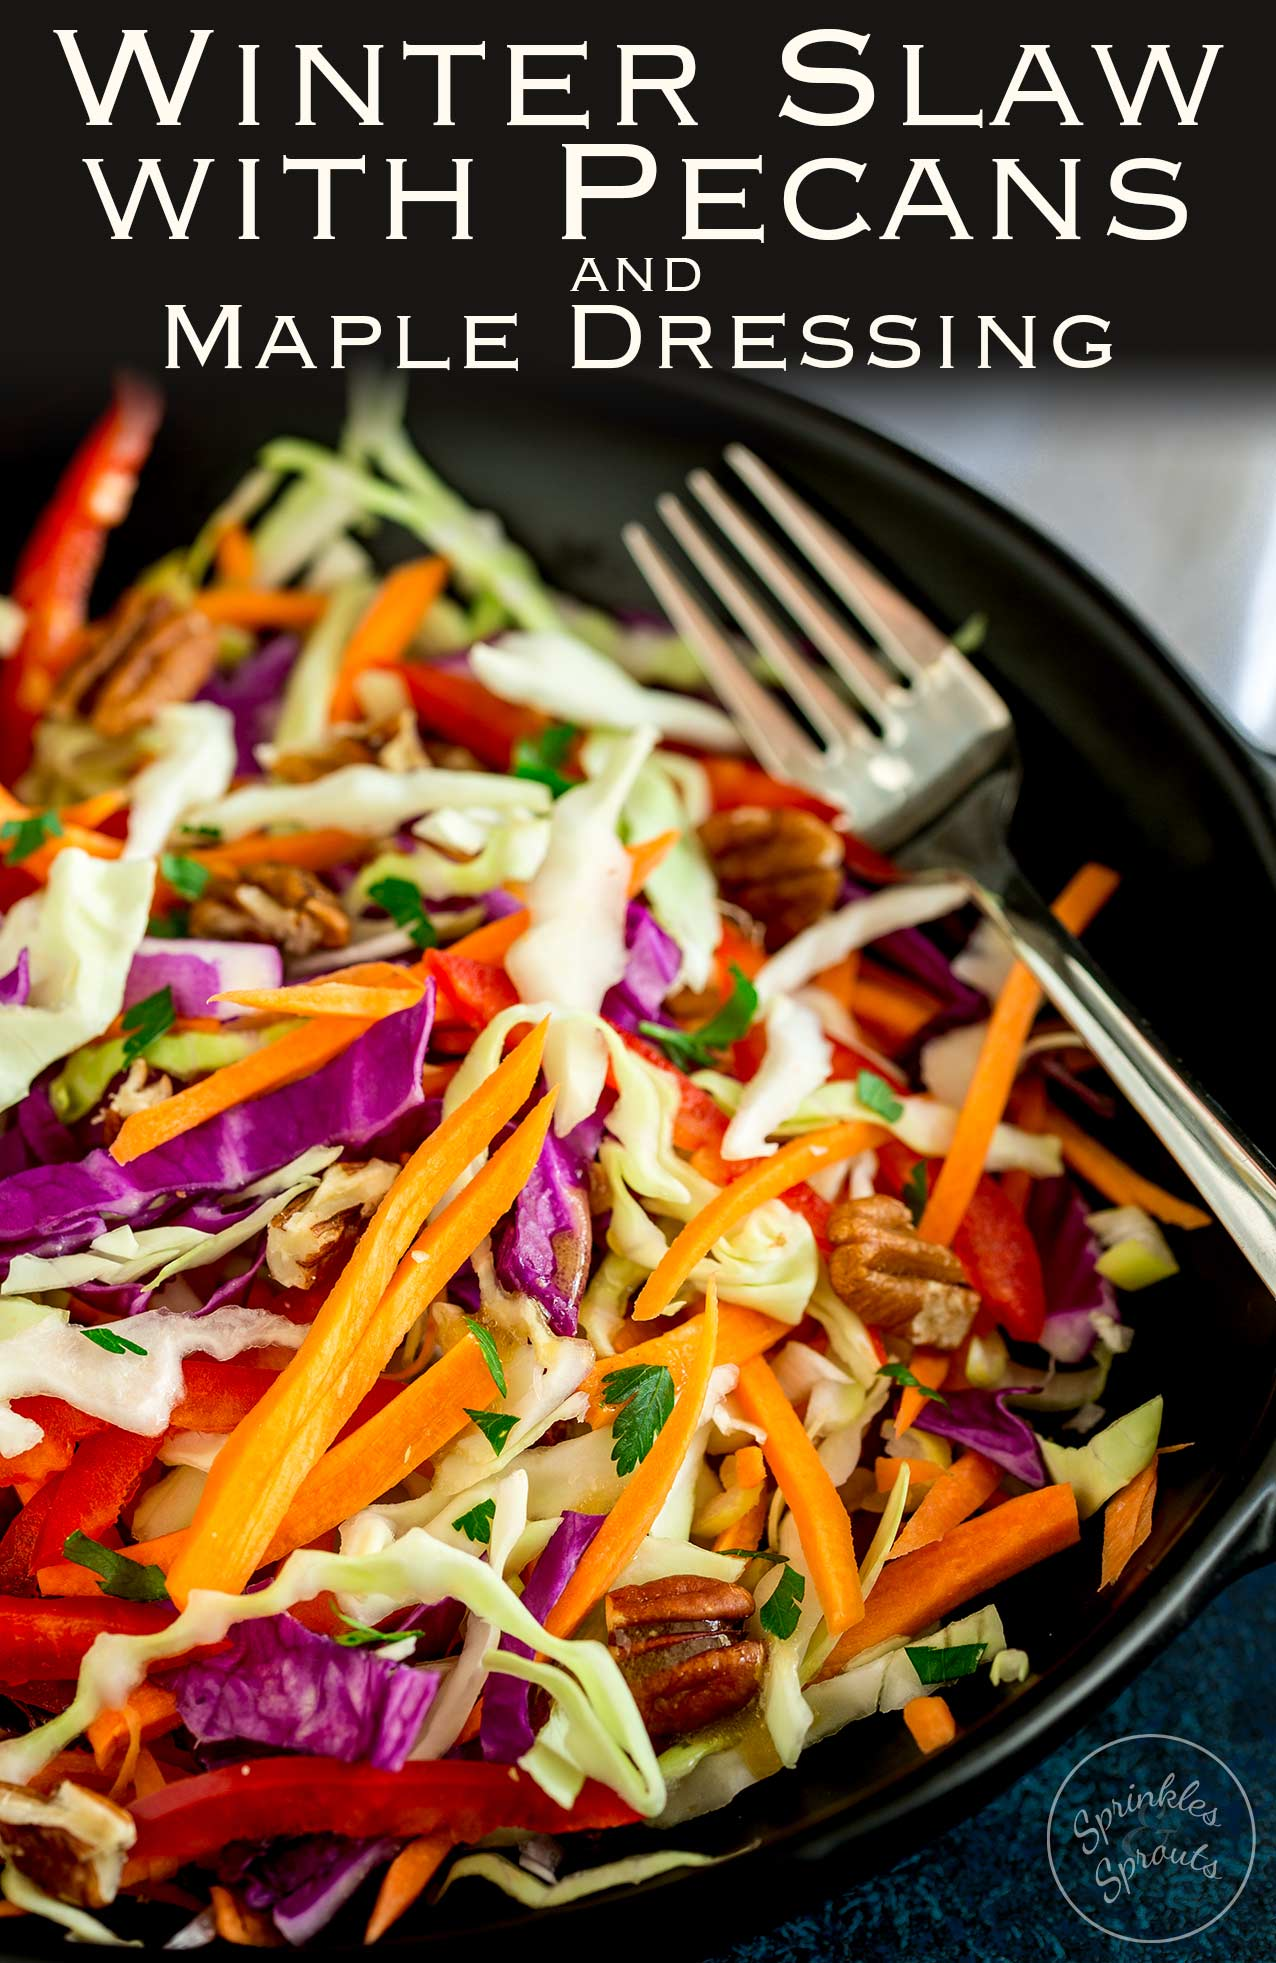 This winter slaw, is packed with crisp crunchy veg. The sweet maple dressing and creamy pecans make it extra special and a delicious and fresh side for the festive season. Recipe by Sprinkles and Sprouts   Delicious Food for Easy Entertaining